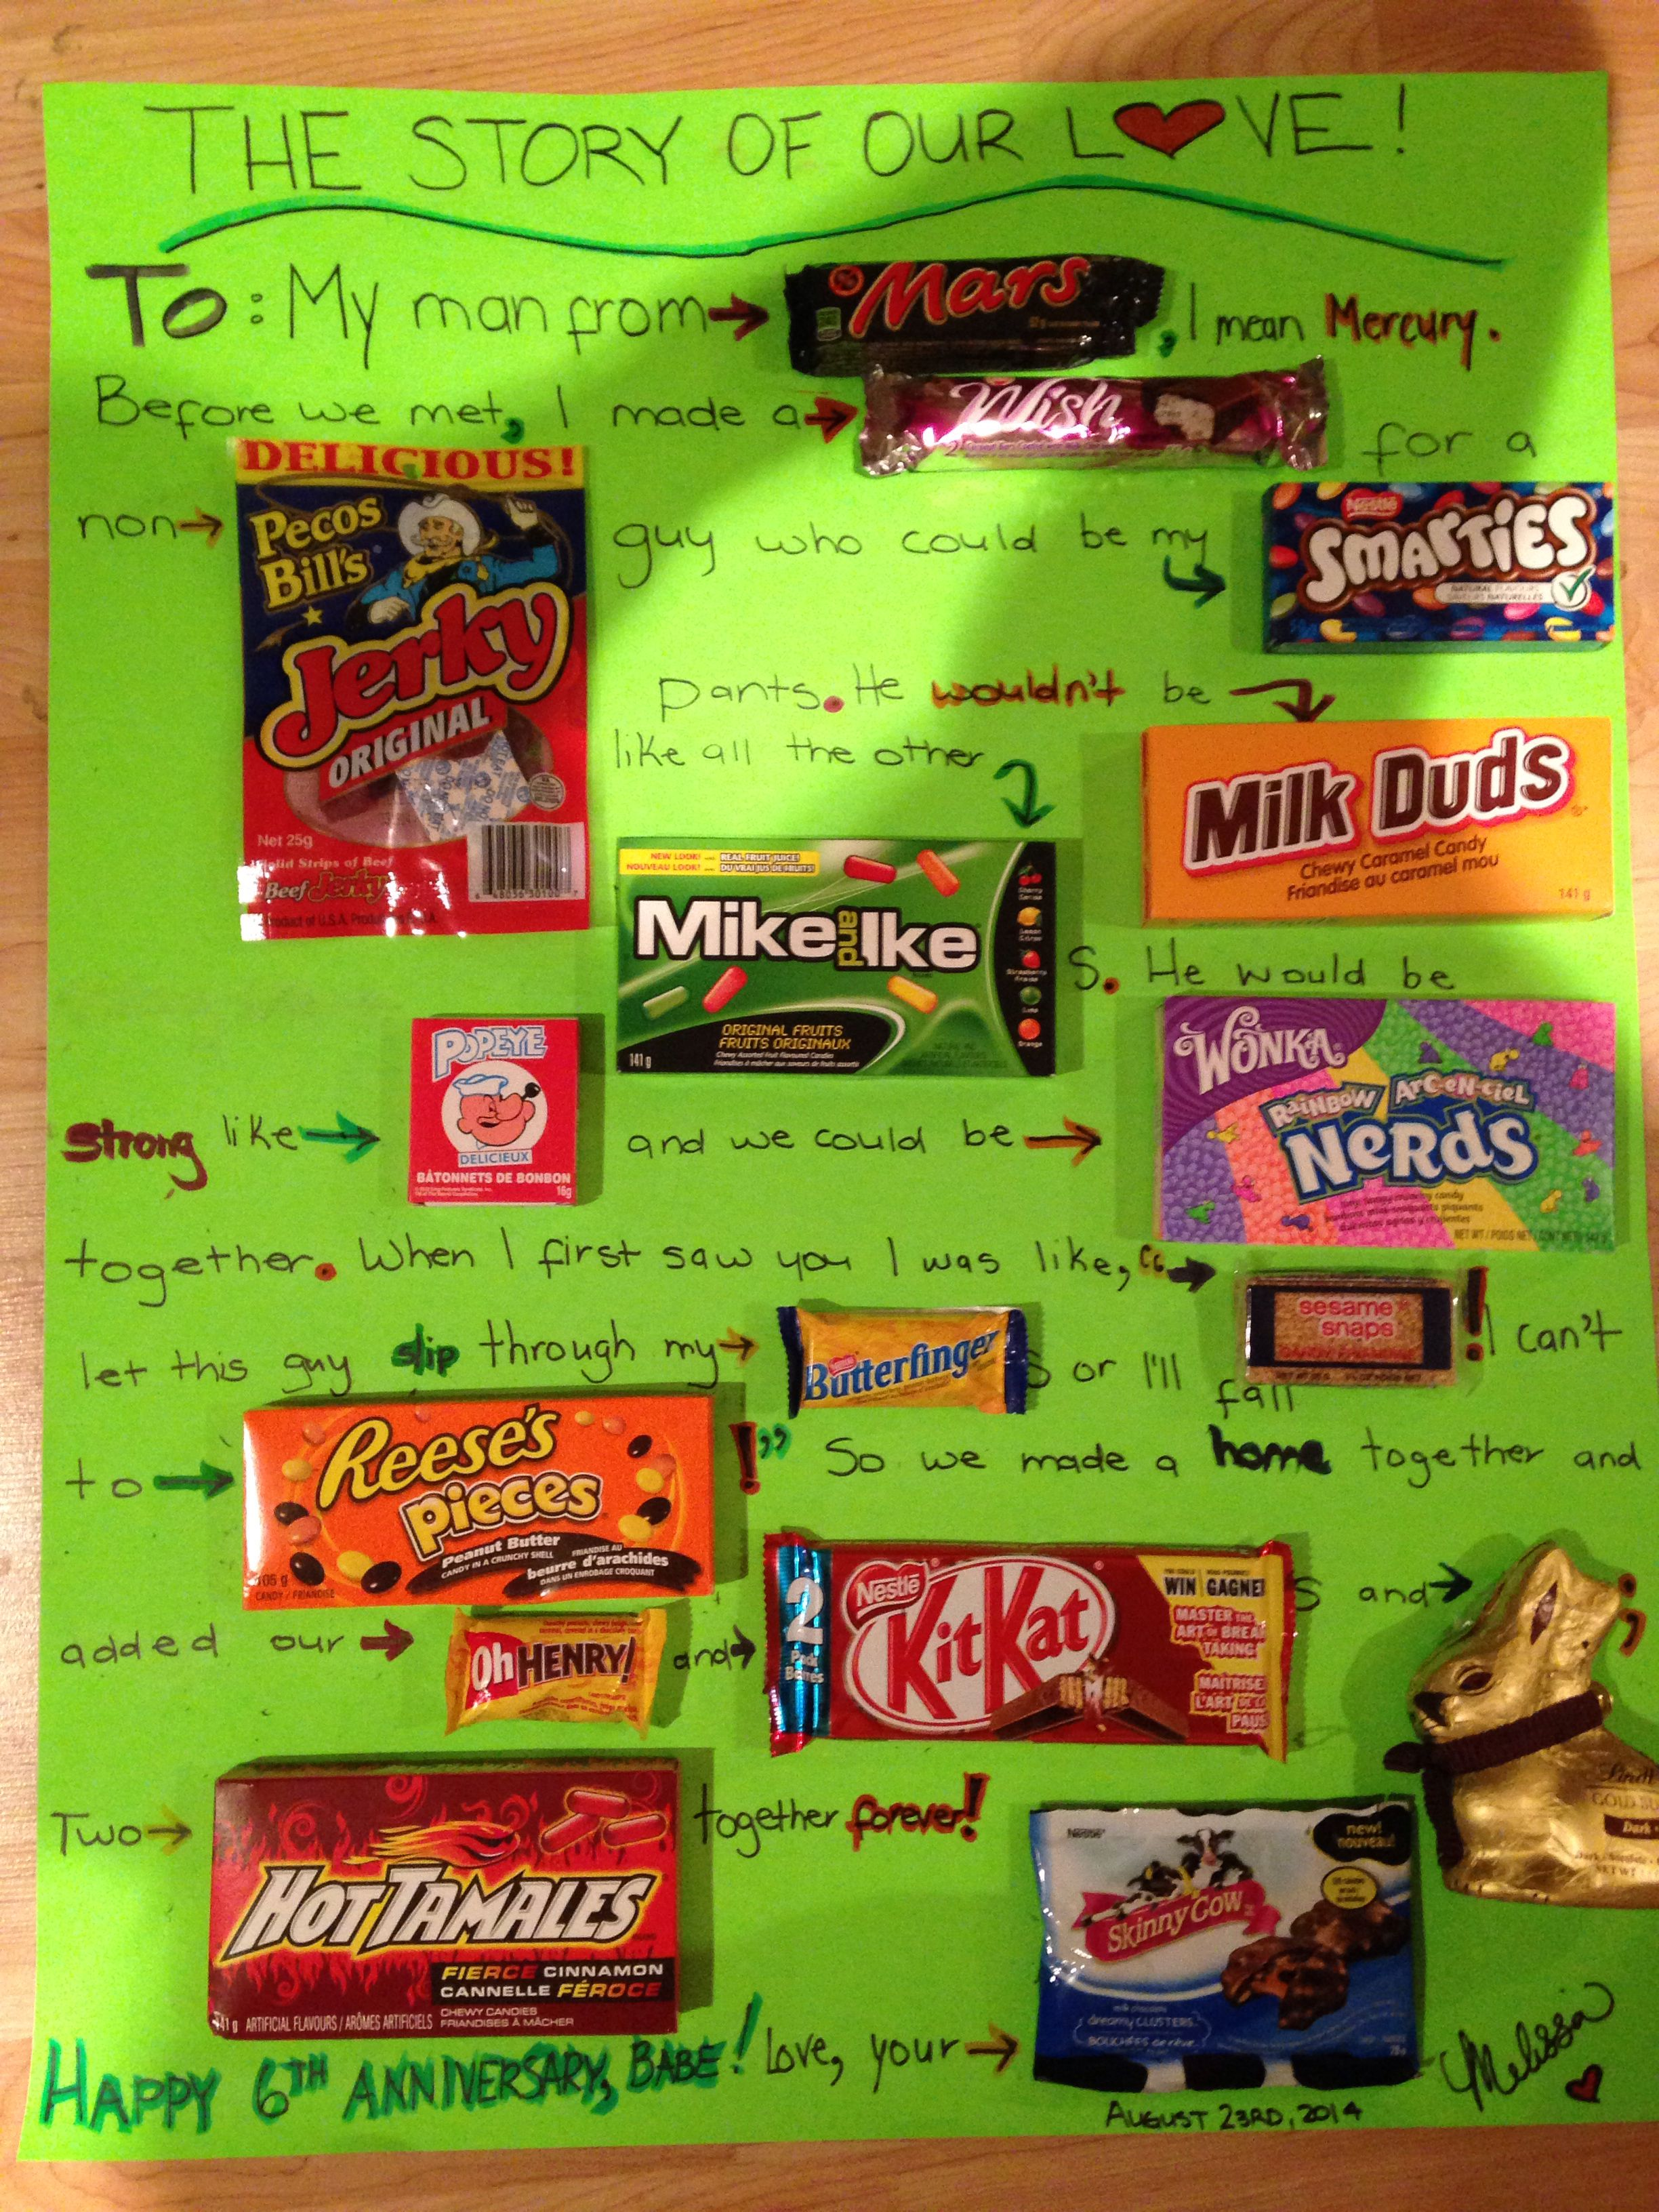 6th Year Candy Anniversary Idea Candy Board Candy Board Mike And Ike Smarties